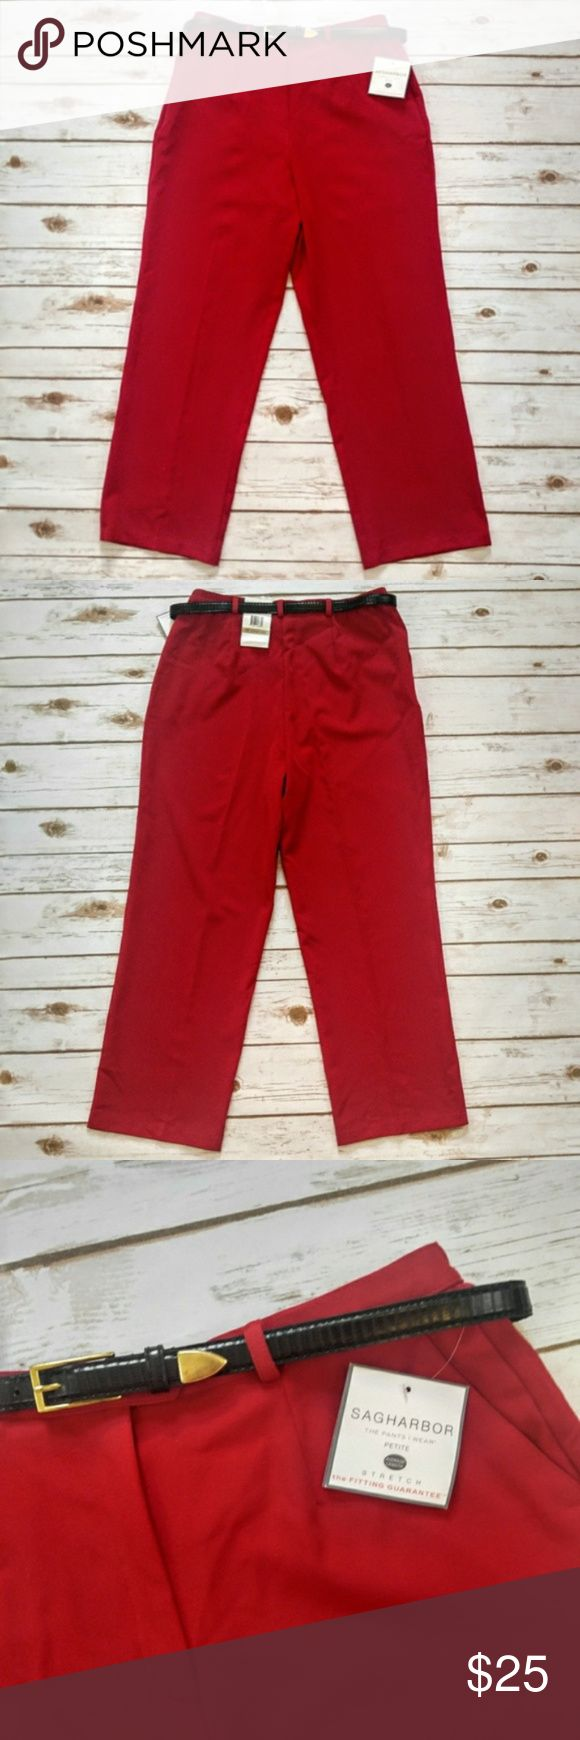 "Sag Harbor Belted Red Dress Pants Sag Harbor Belted Red Dress Pants  Size 12 Petite brand new with tags. 16"" waist 29"" inseam. Please let me know if you have any questions. I ship the same day as long as the post office is still open. Have a great day, thanks for checking out my closet and happy poshing! Sag Harbor Pants Straight Leg"